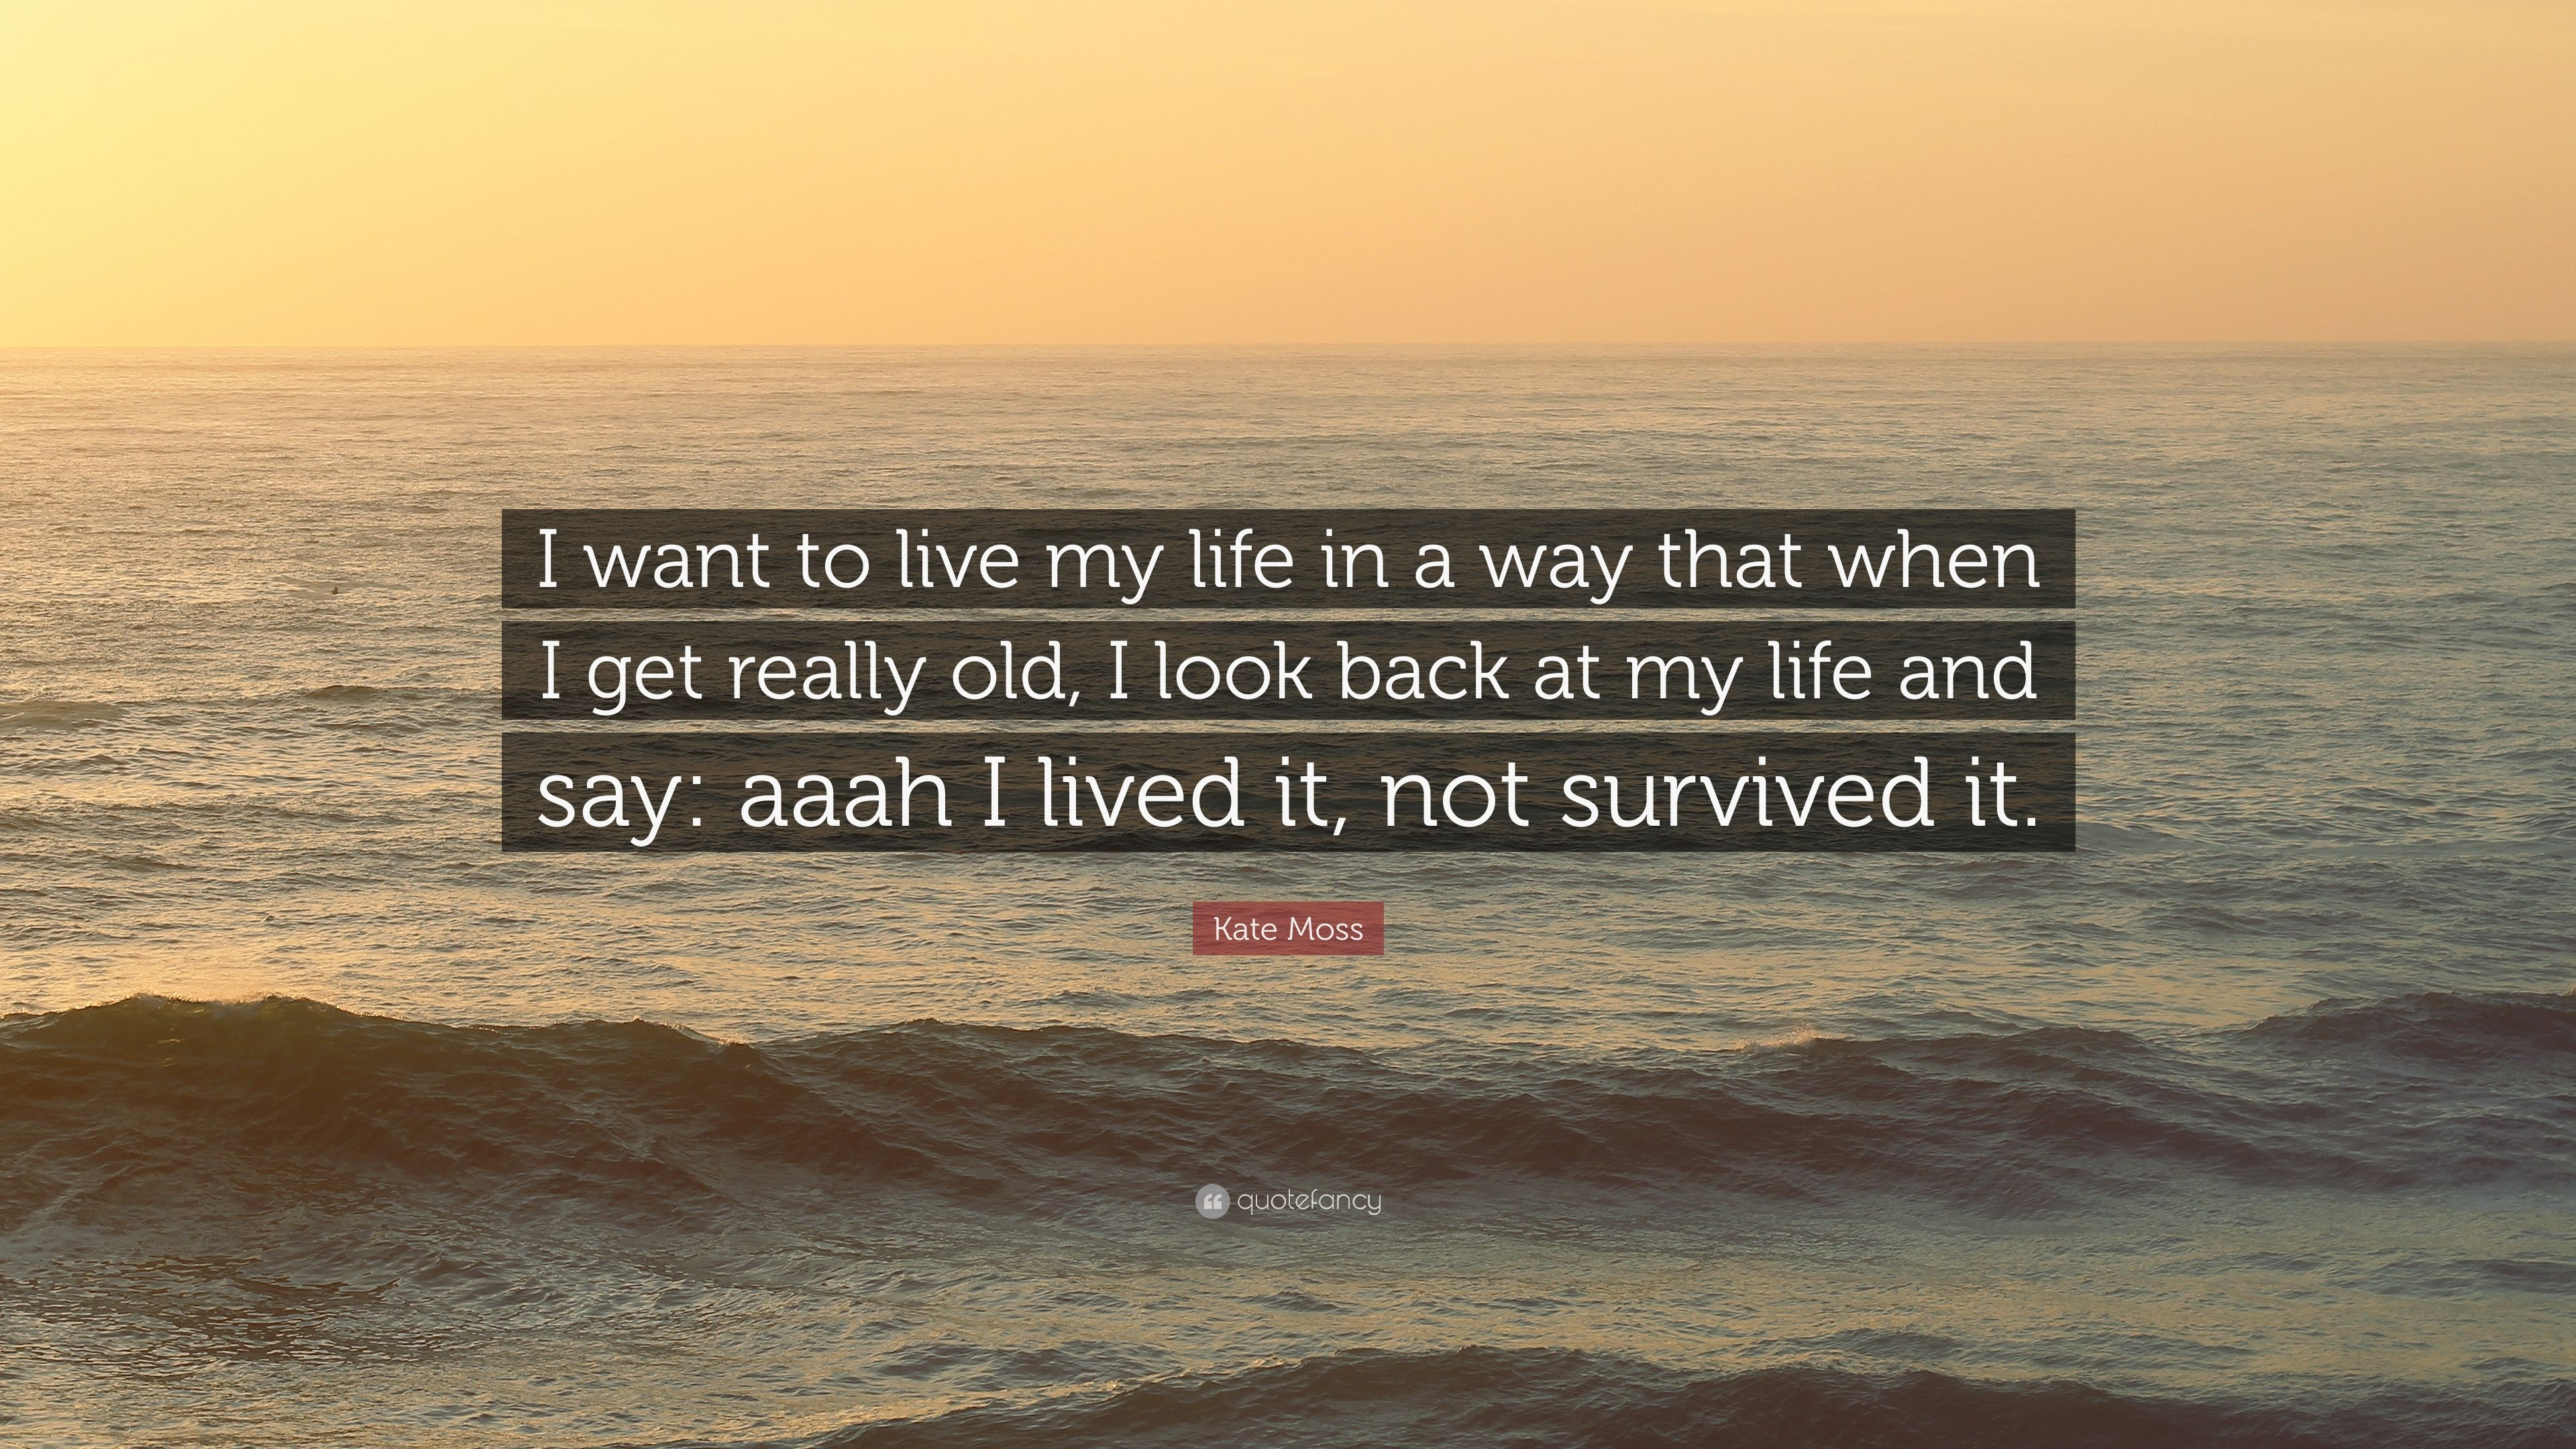 Kate Moss Quote I Want To Live My Life In A Way That When I Get